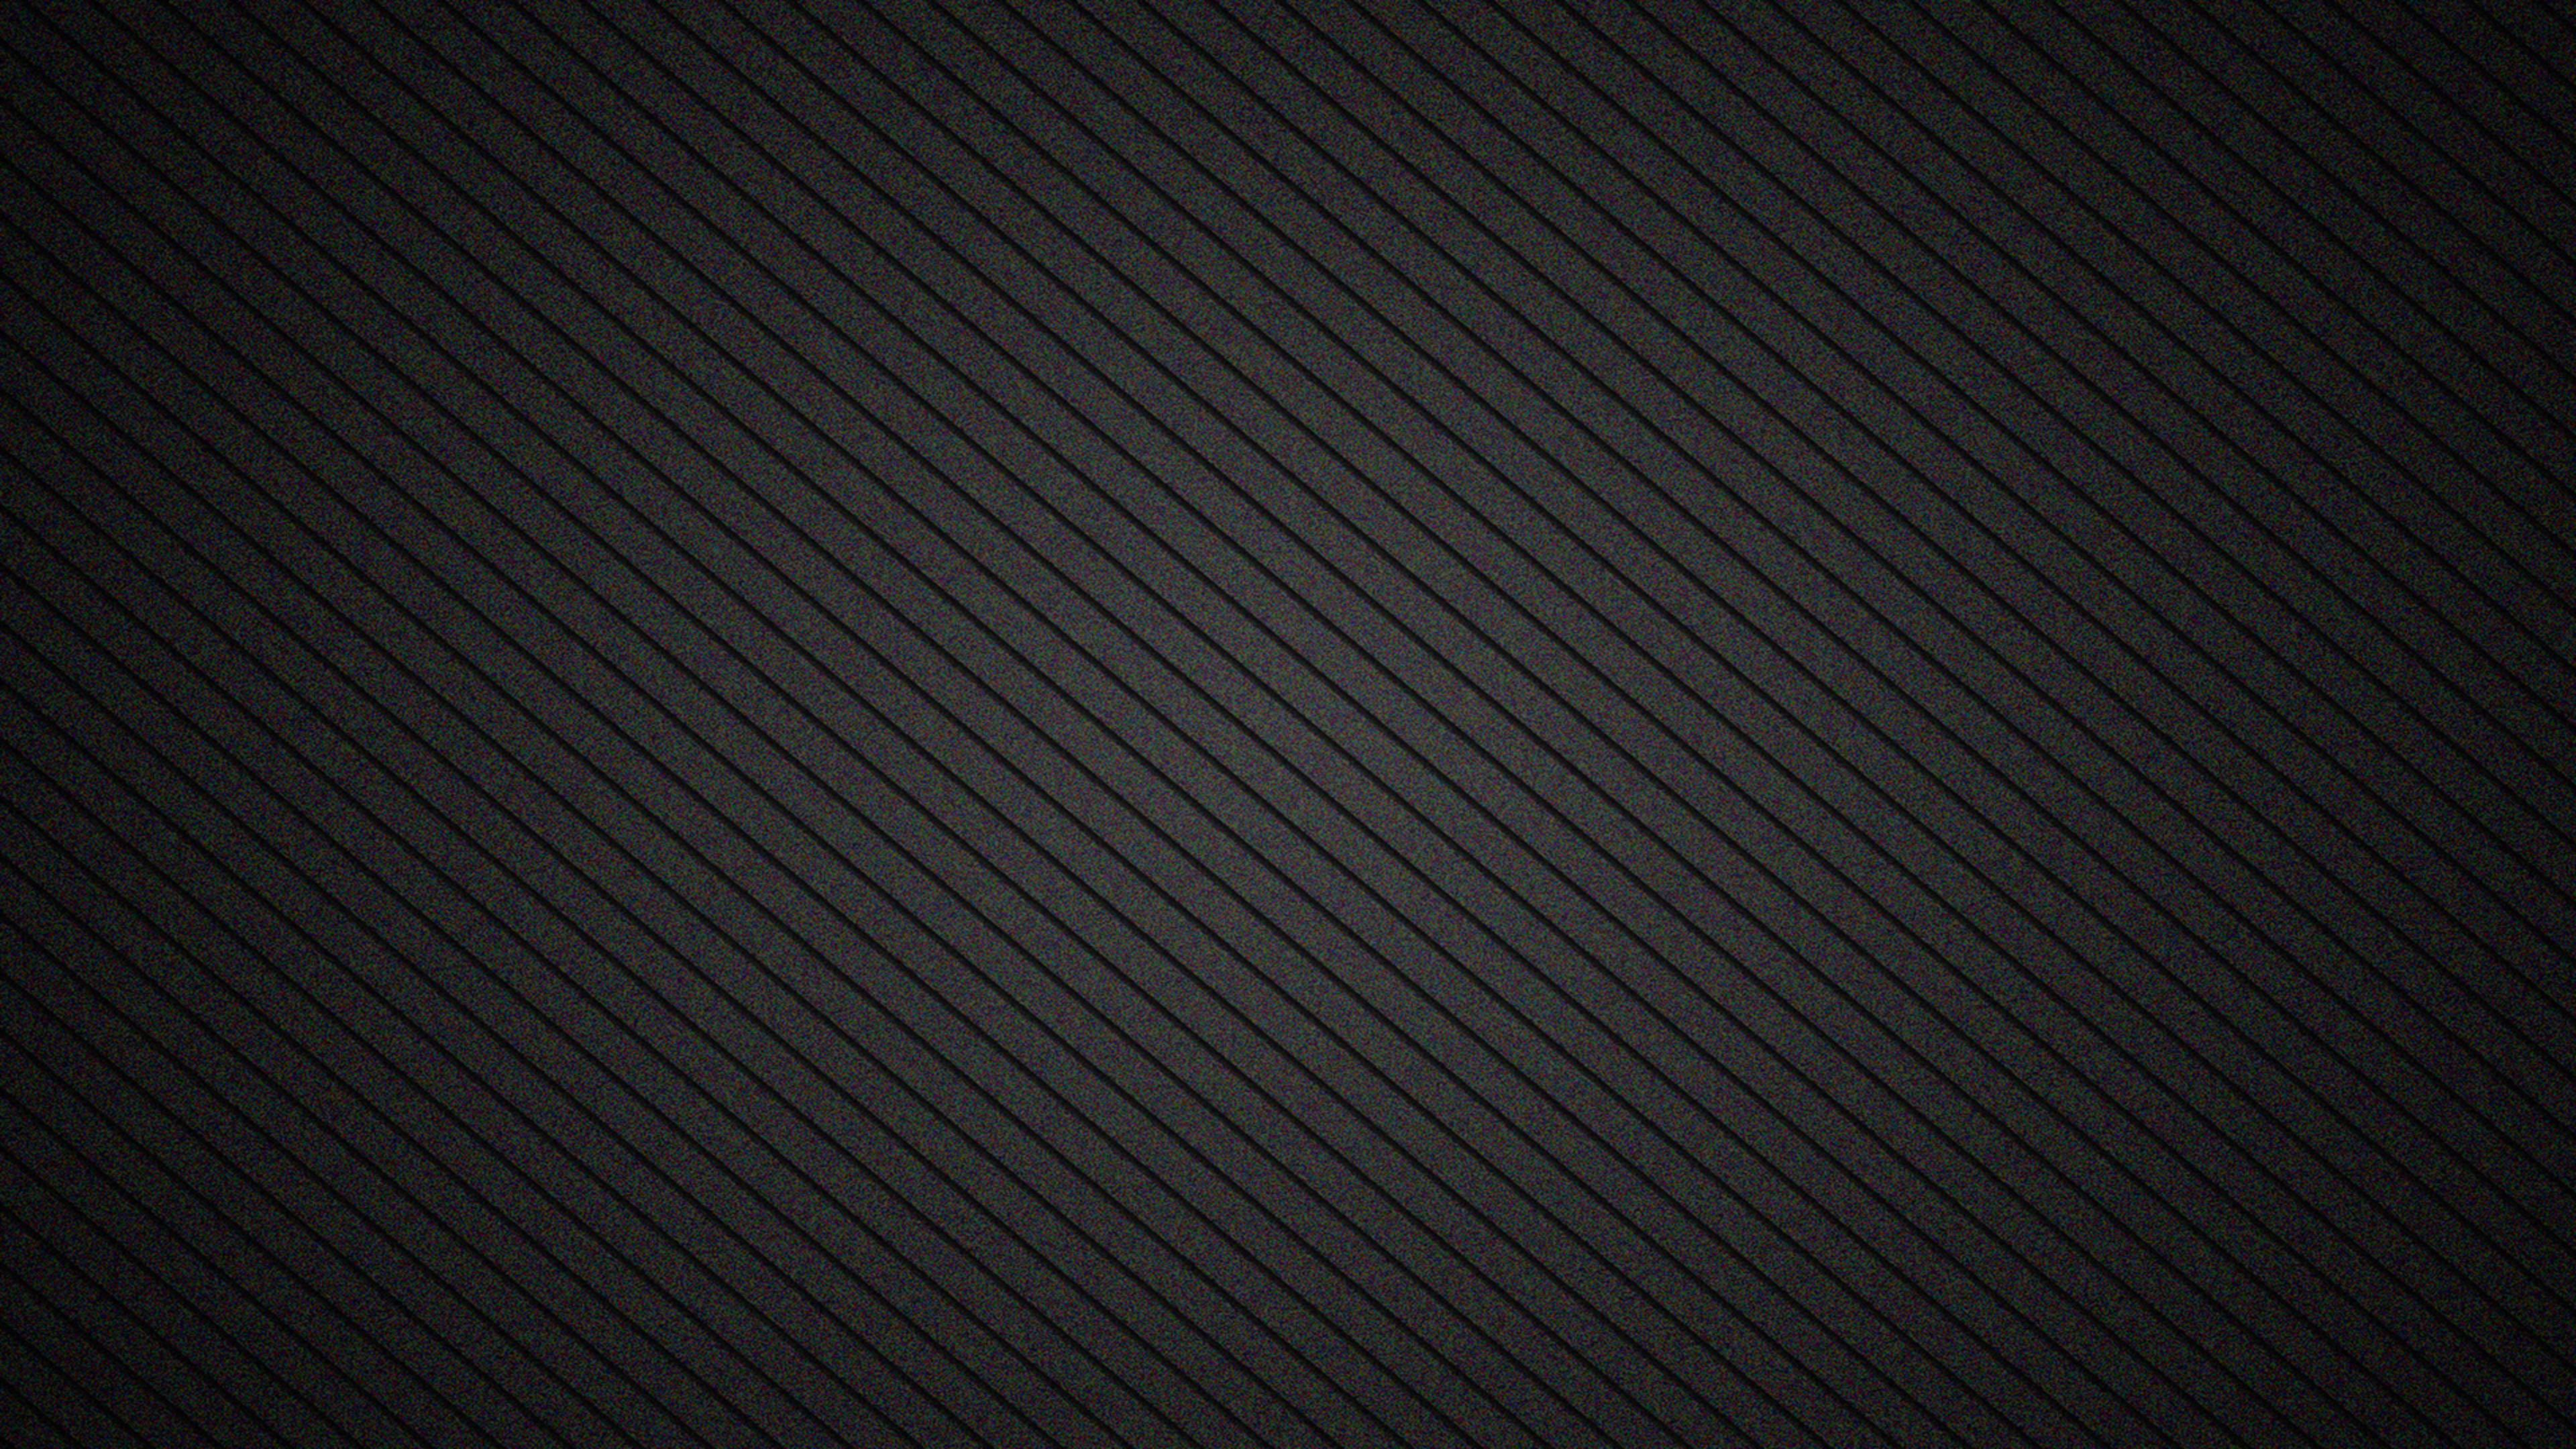 Simple Black 4K Abstract Wallpapers 4K Wallpaper 3840x2160